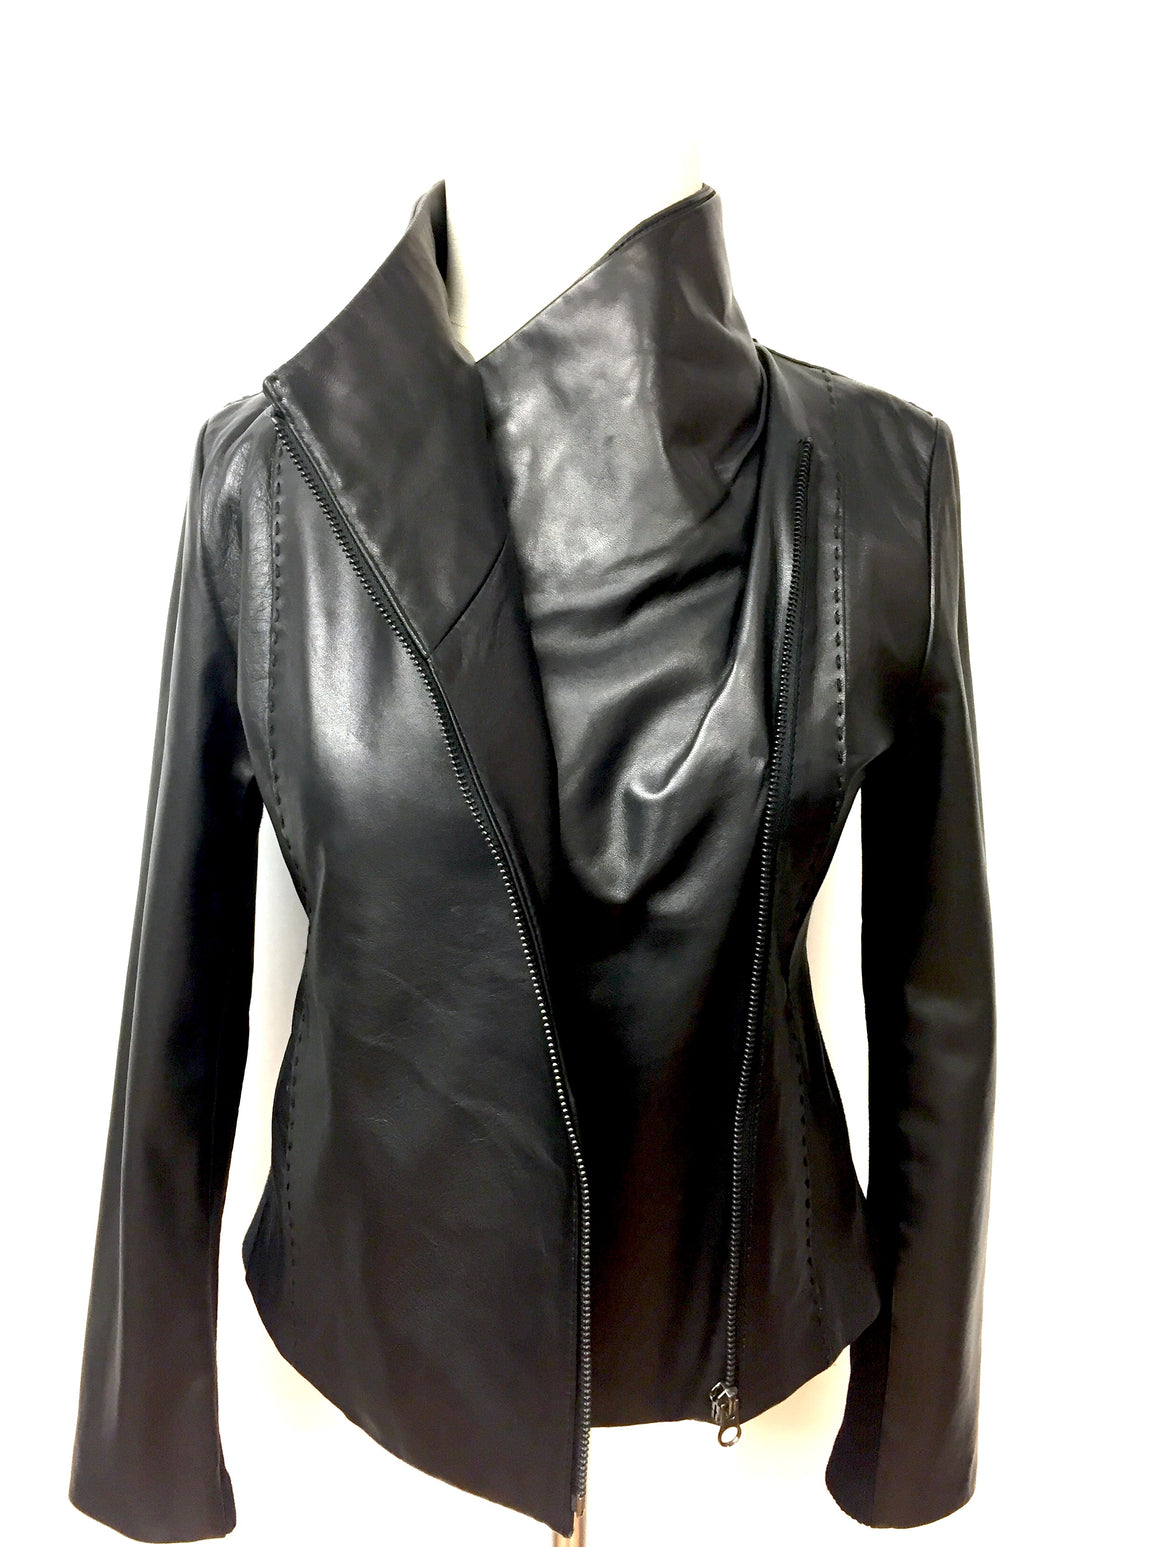 VINCE Black Leather Asymmetric Zip Closure Jacket Size: XL - Runs SMALL